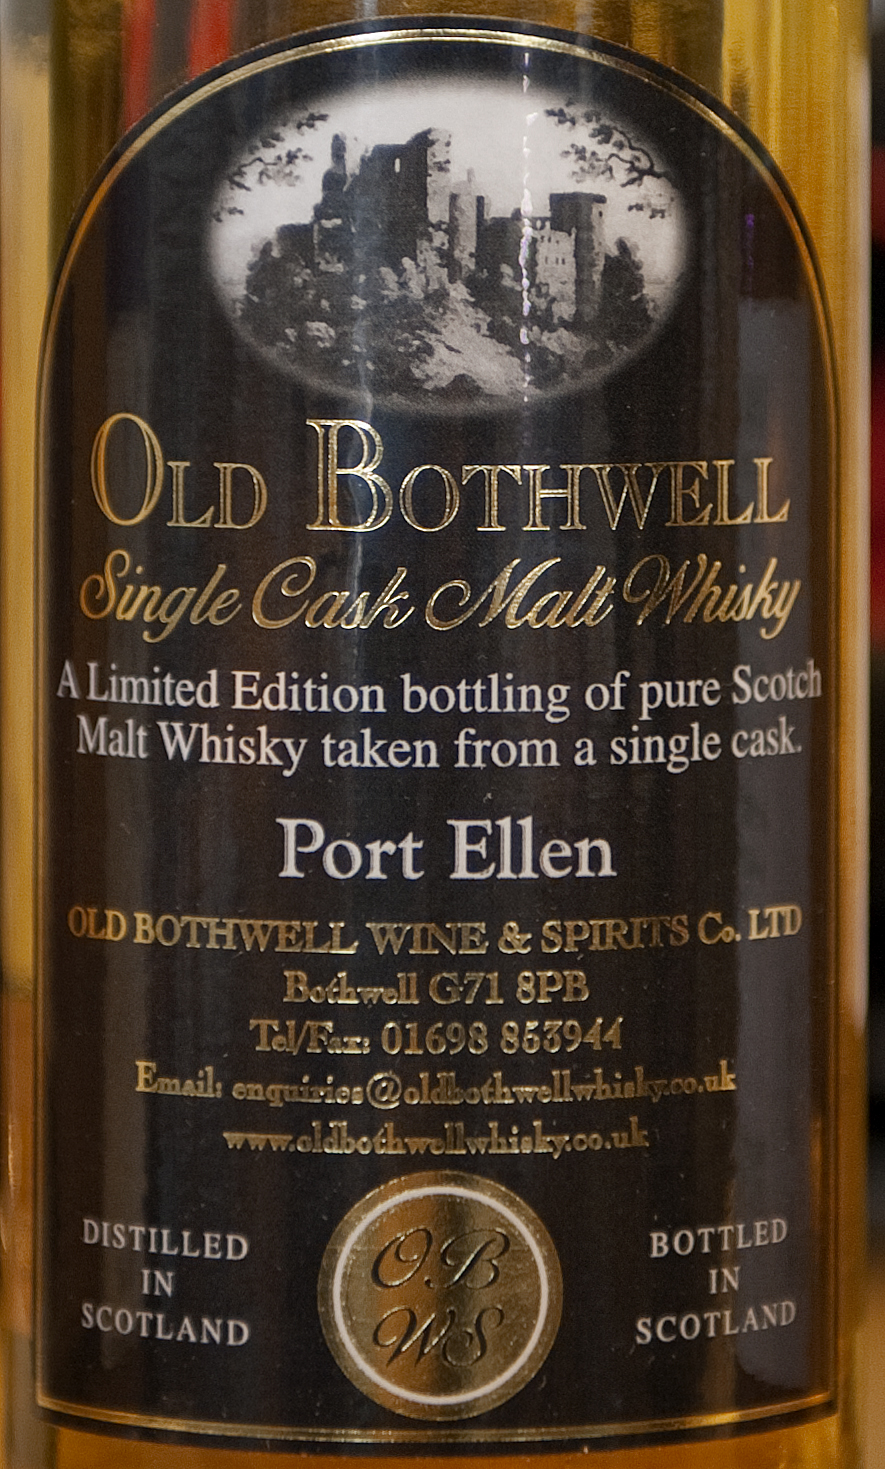 Billede: port ellen - old bothwell - front label.jpg